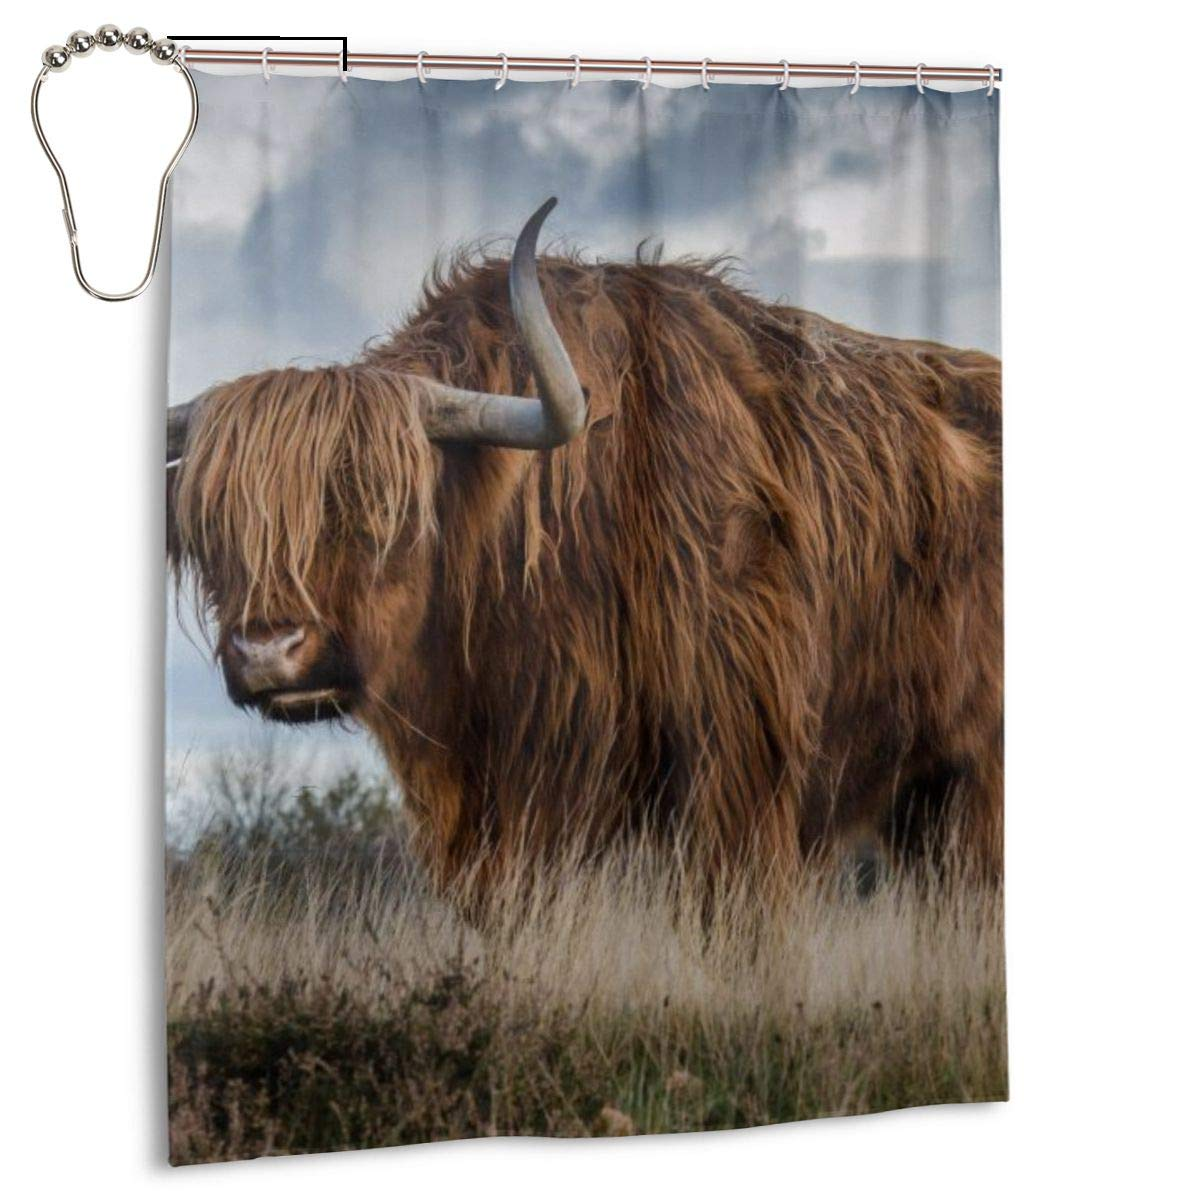 Shower Curtain Portrait Of A Highland Cow 60 X 72Inch FREE SHIPPING